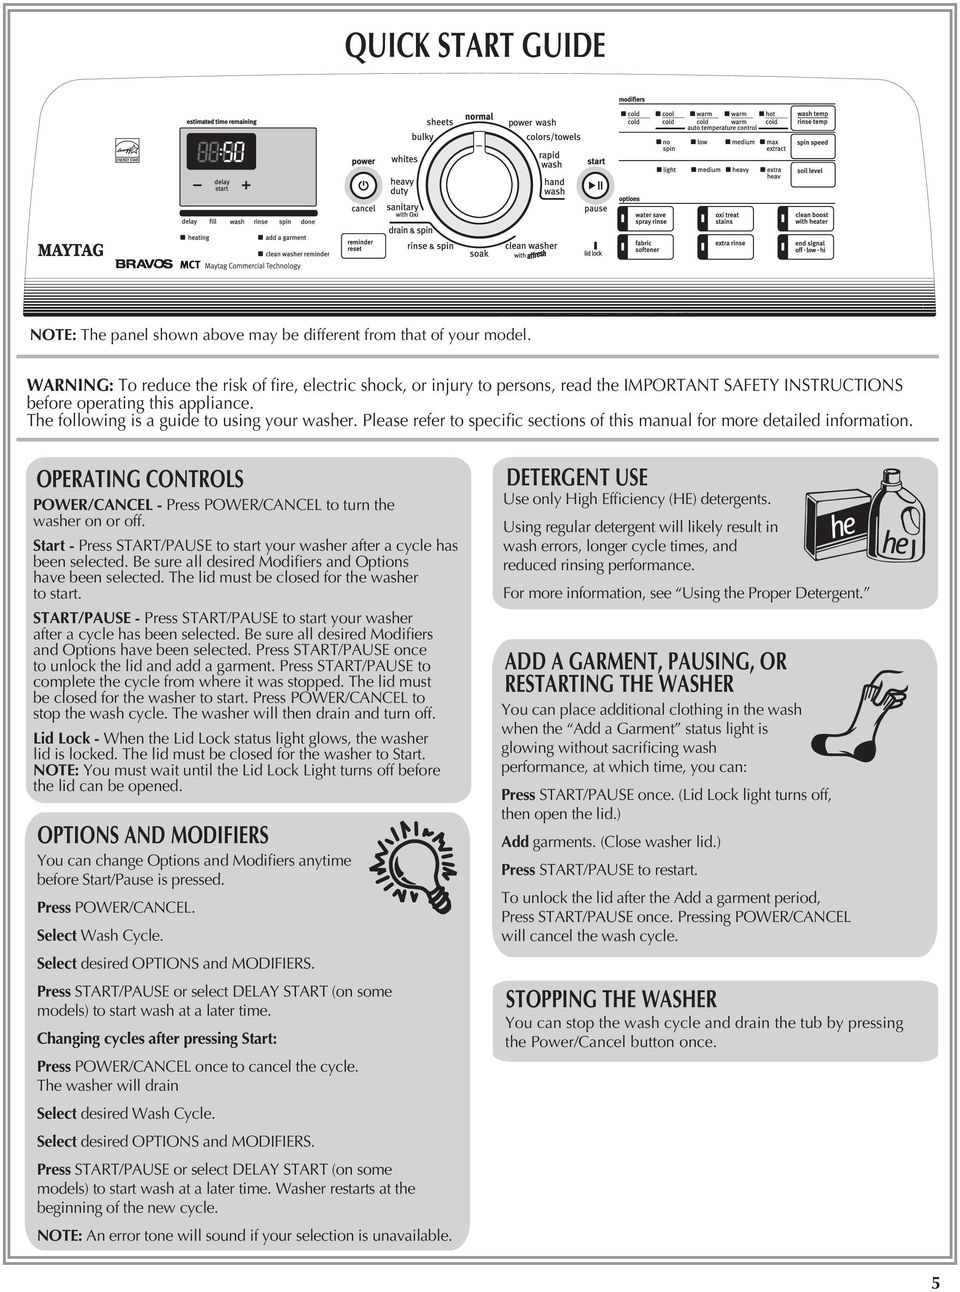 Please refer to specific sections of this manual for more detailed information. OPERATING CONTROLS POWER/CANCEL - Press POWER/CANCEL to turn the washer on or off.